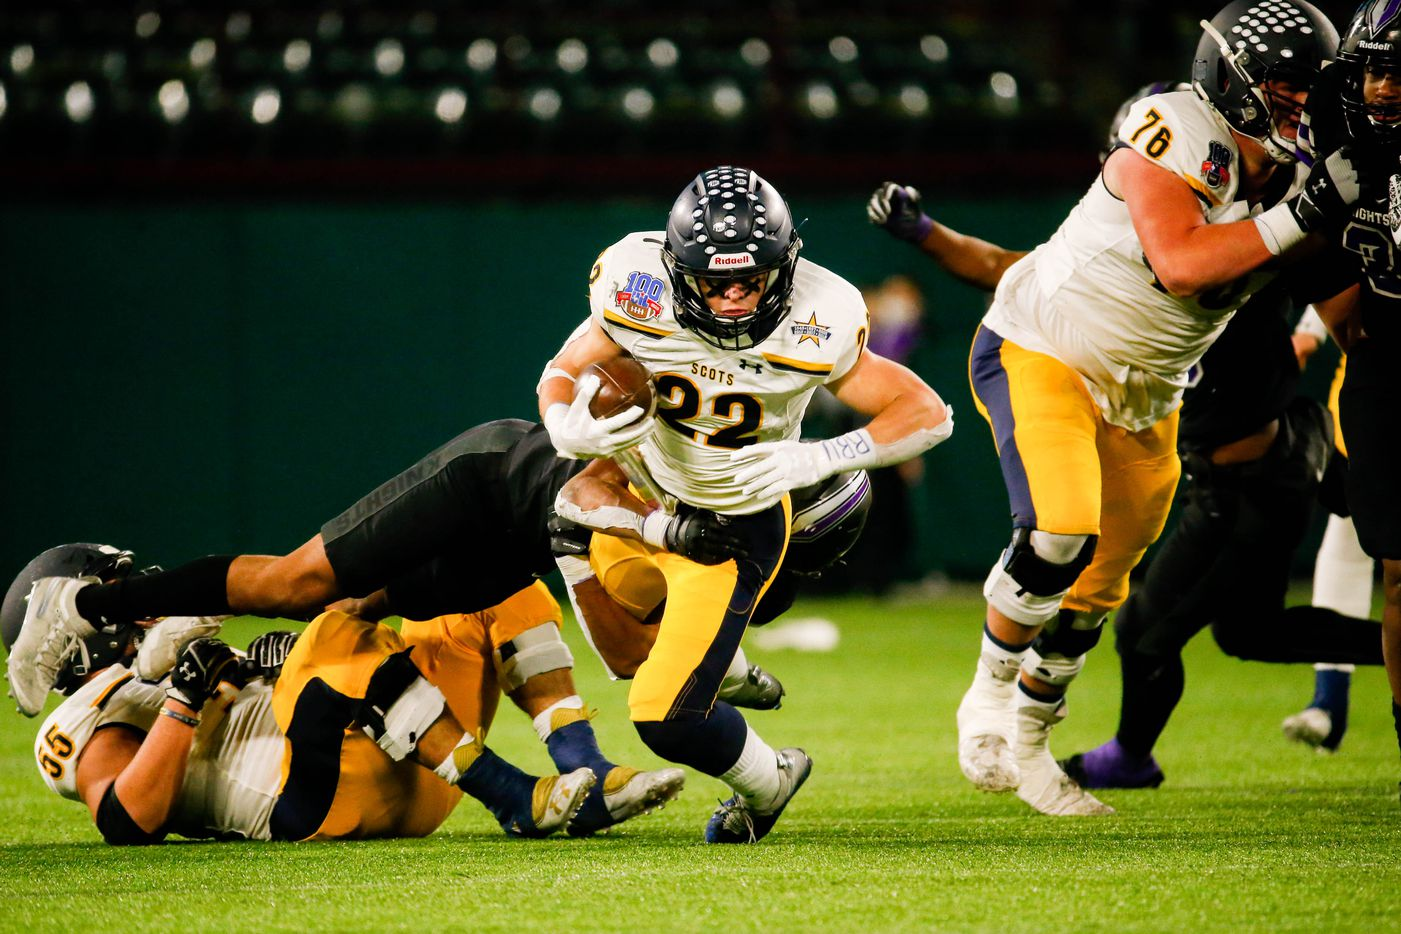 Highland Park's Brooks Bond (22) runs the ball in the second half of a Class 5A Division I area-round playoff game against Frisco Independence at Globe Life Park in Arlington on Thursday, Dec. 17, 2020. Highland Park won 42-20. (Juan Figueroa/ The Dallas Morning News)